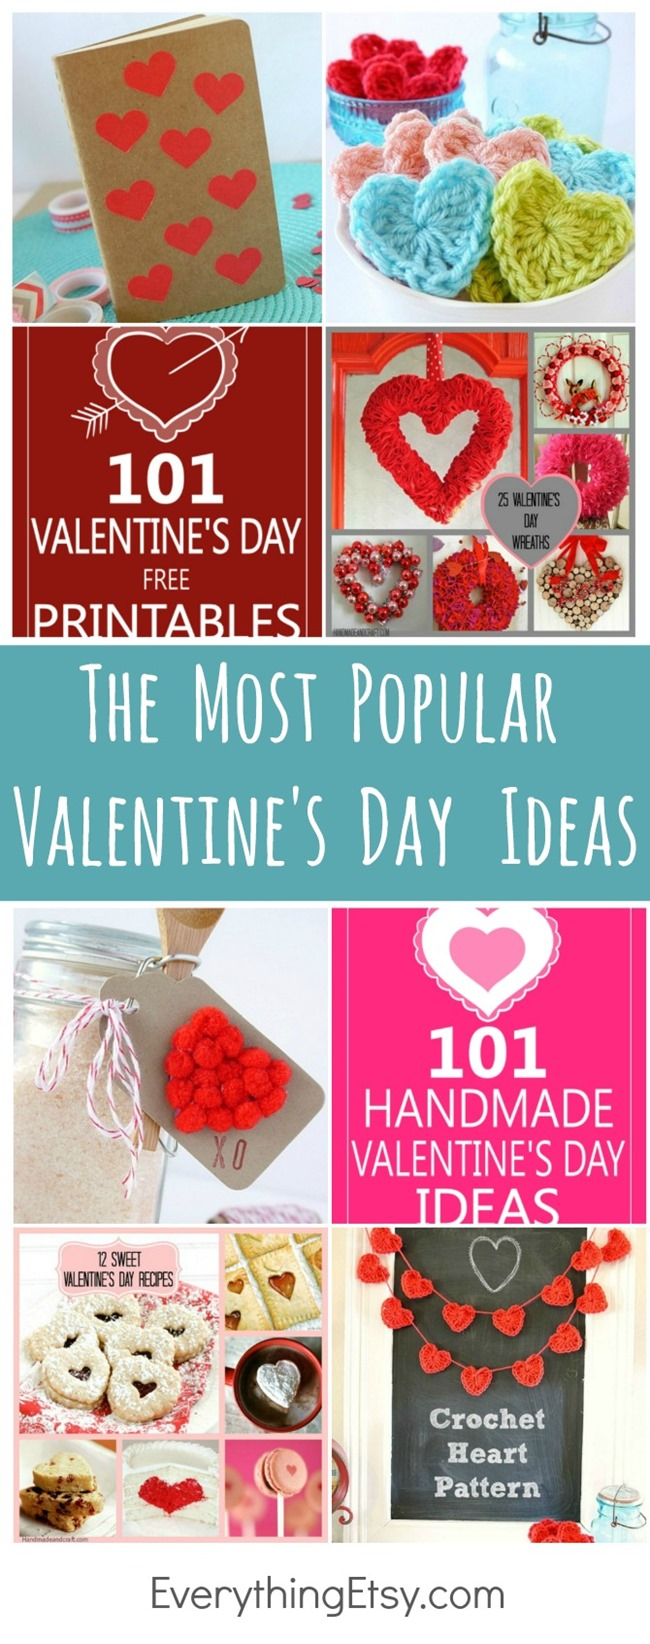 The Most Popular Valentine's Day Ideas and Printables on EverythingEtsy.com